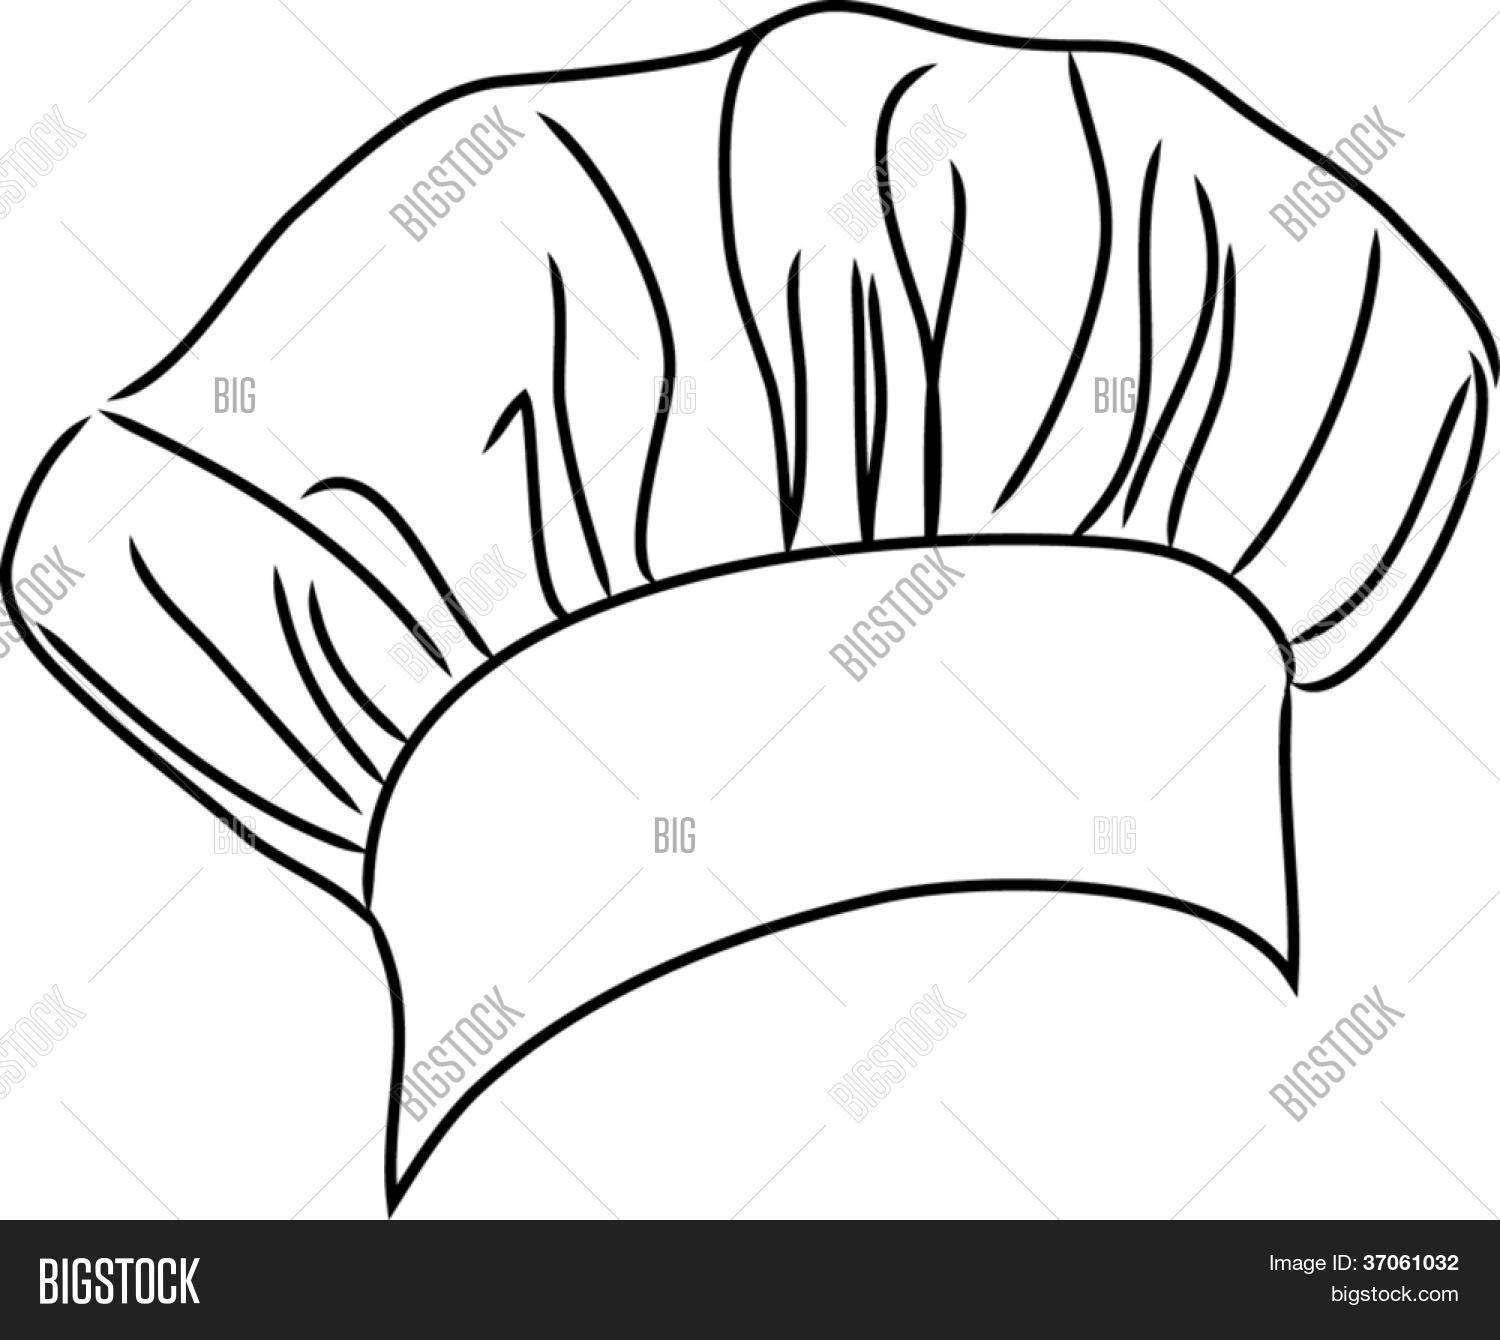 1500x1340 Chef Hat Vector Line Drawing Vector Amp Photo Bigstock